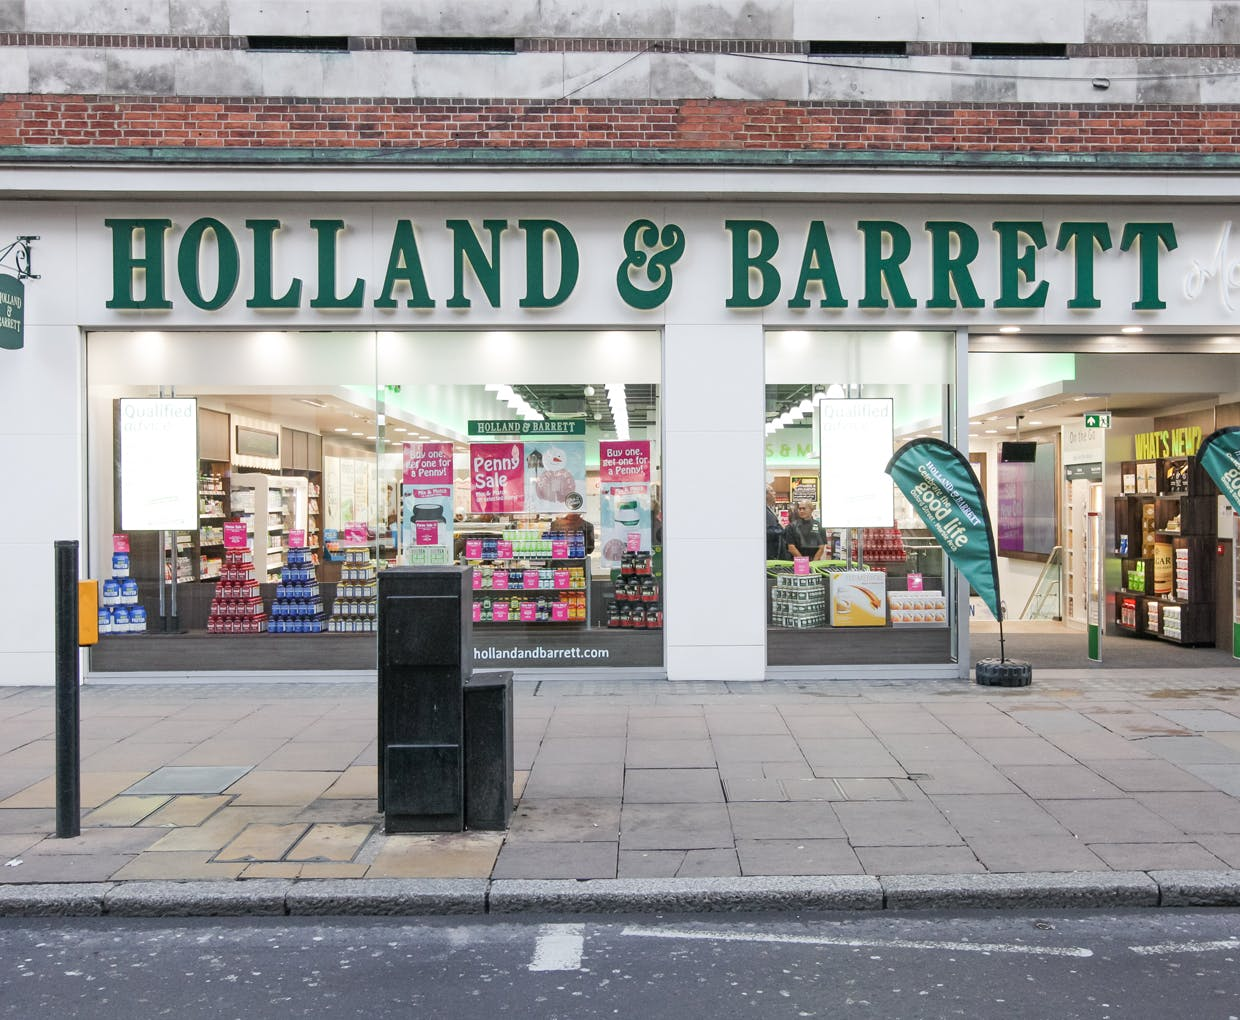 Holland & Barrett preps brand refresh to shake off 'dusty' image